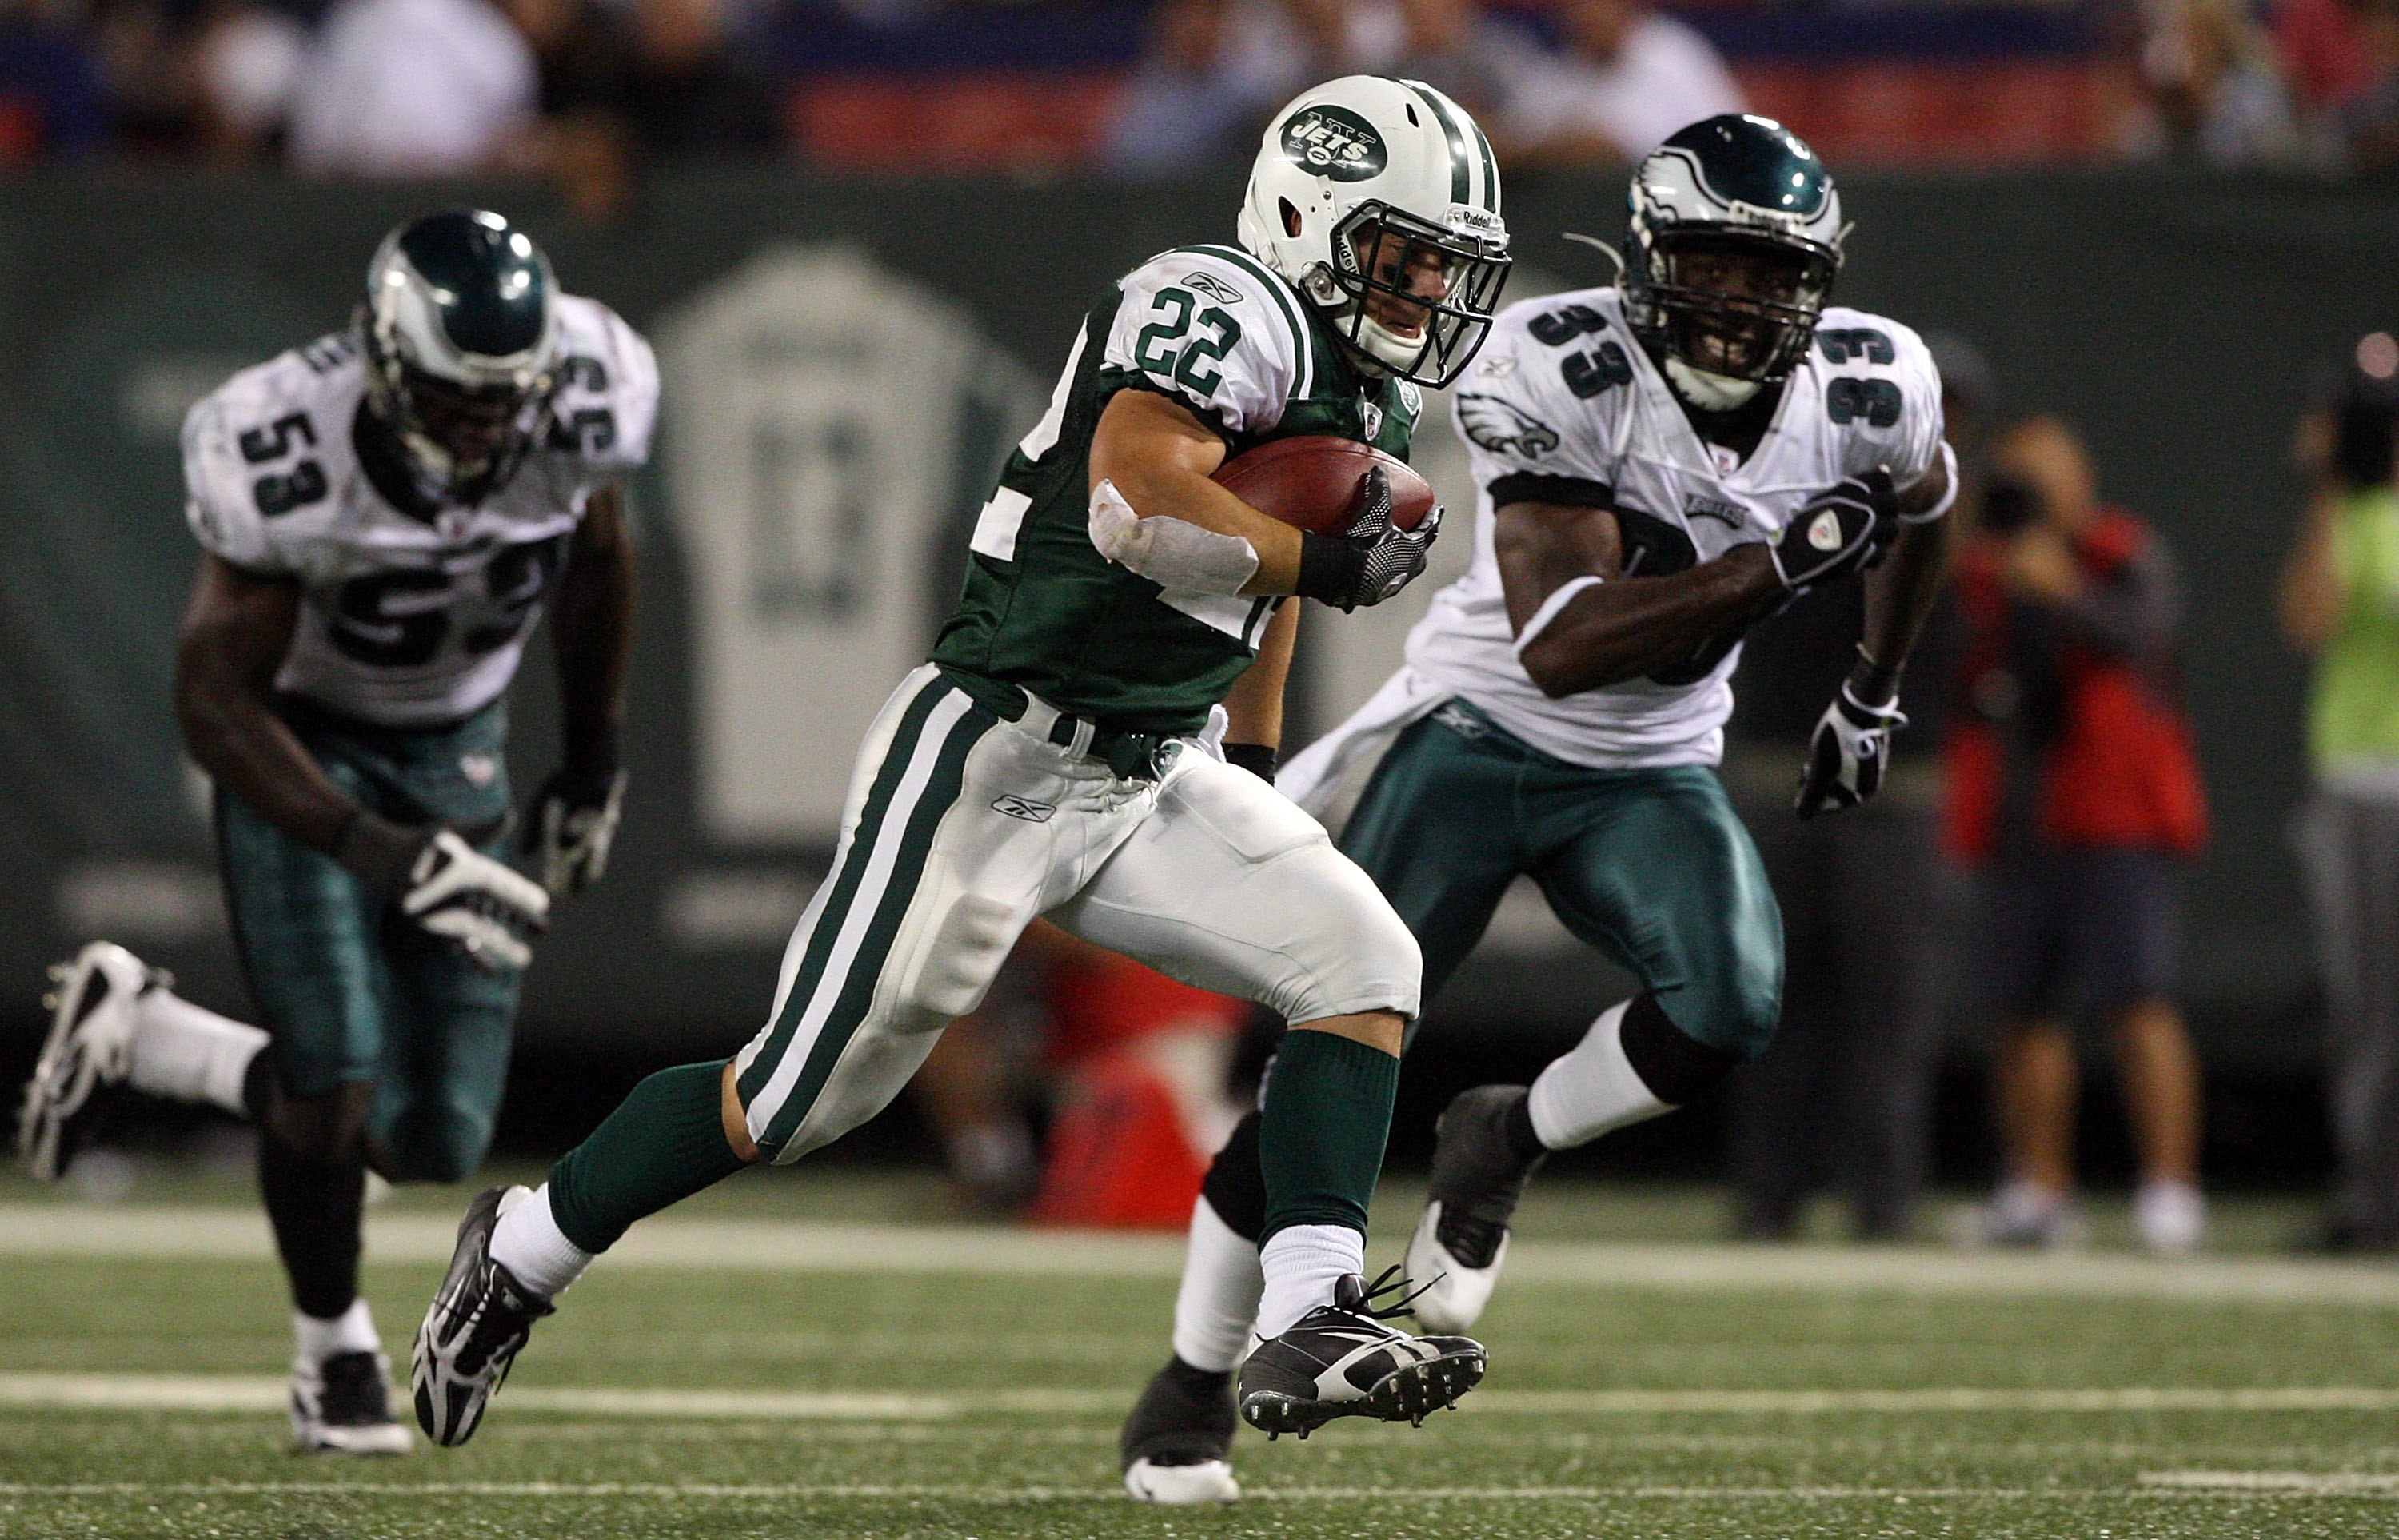 EAST RUTHERFORD, NJ - SEPTEMBER 03: Danny Woodhead #22 of the New York Jets runs the ball against the Philadelphia Eagles on September 3, 2009 at Giants Stadium in East Rutherford, New Jersey. The Jets defeated the Eagles 38-27.  (Photo by Jim McIsaac/Get